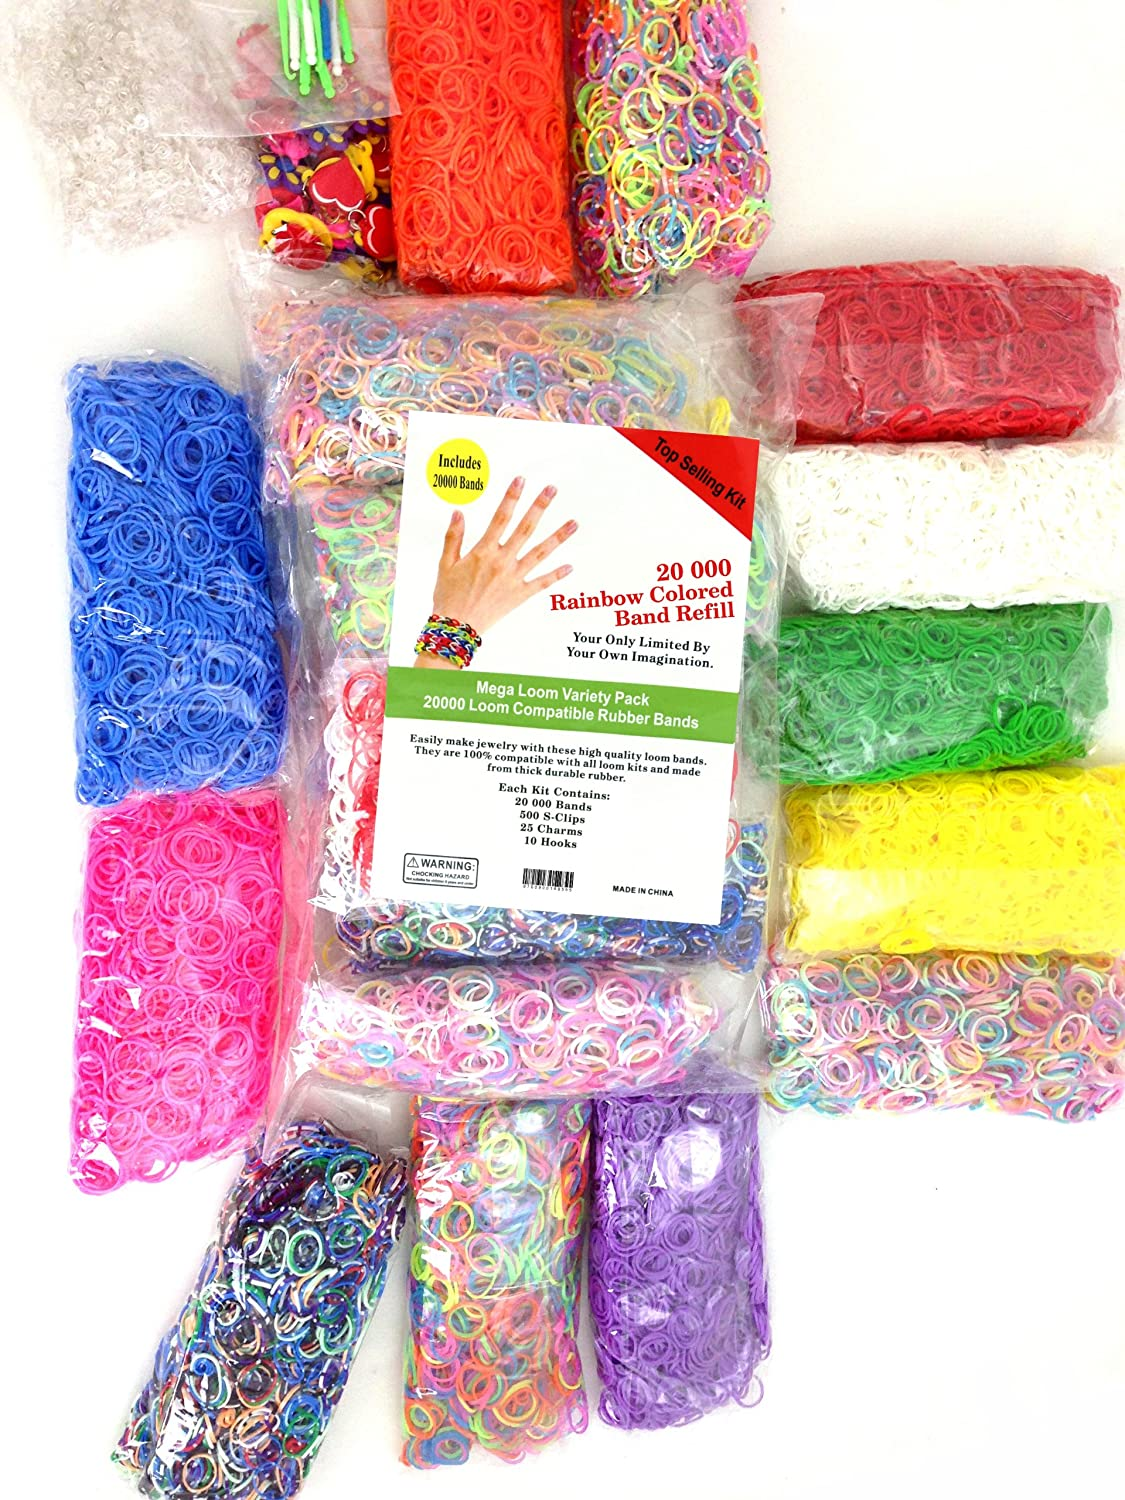 Other Kids Arts Amp Crafts 20 000 Loom Band Refill Kit